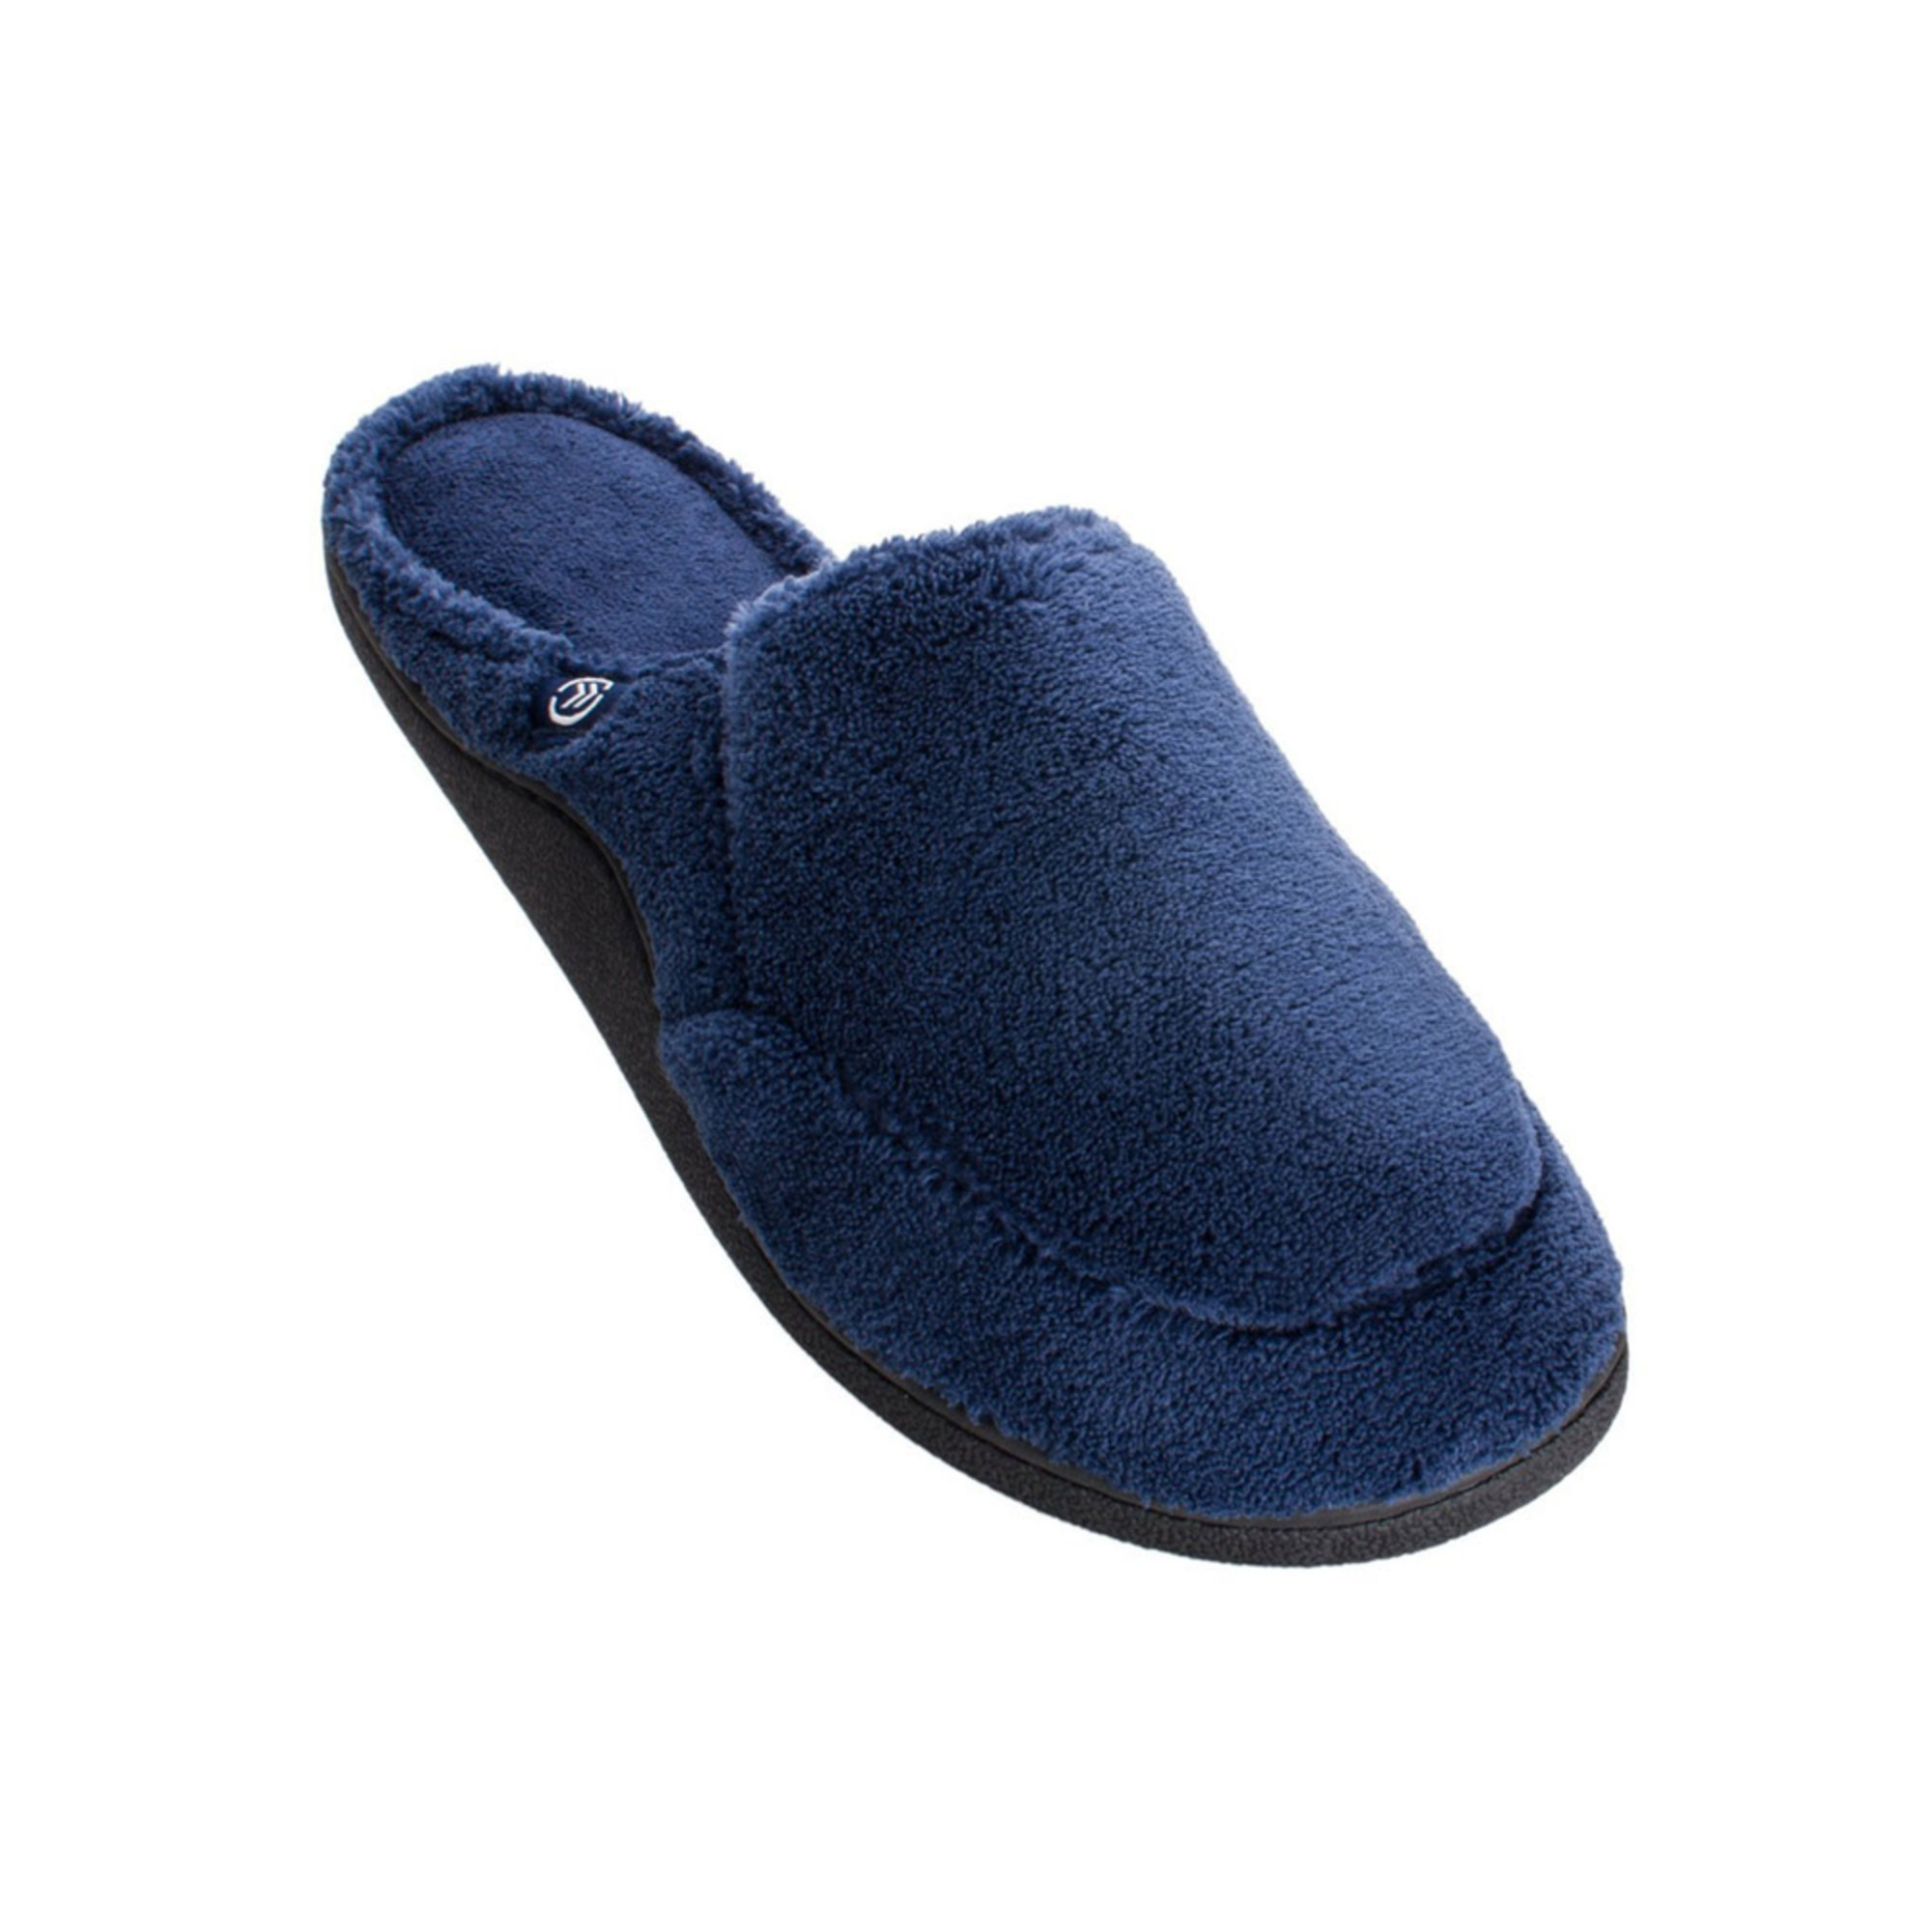 men 39 s microterry clog slipper men 39 s bedroom slippers shoes